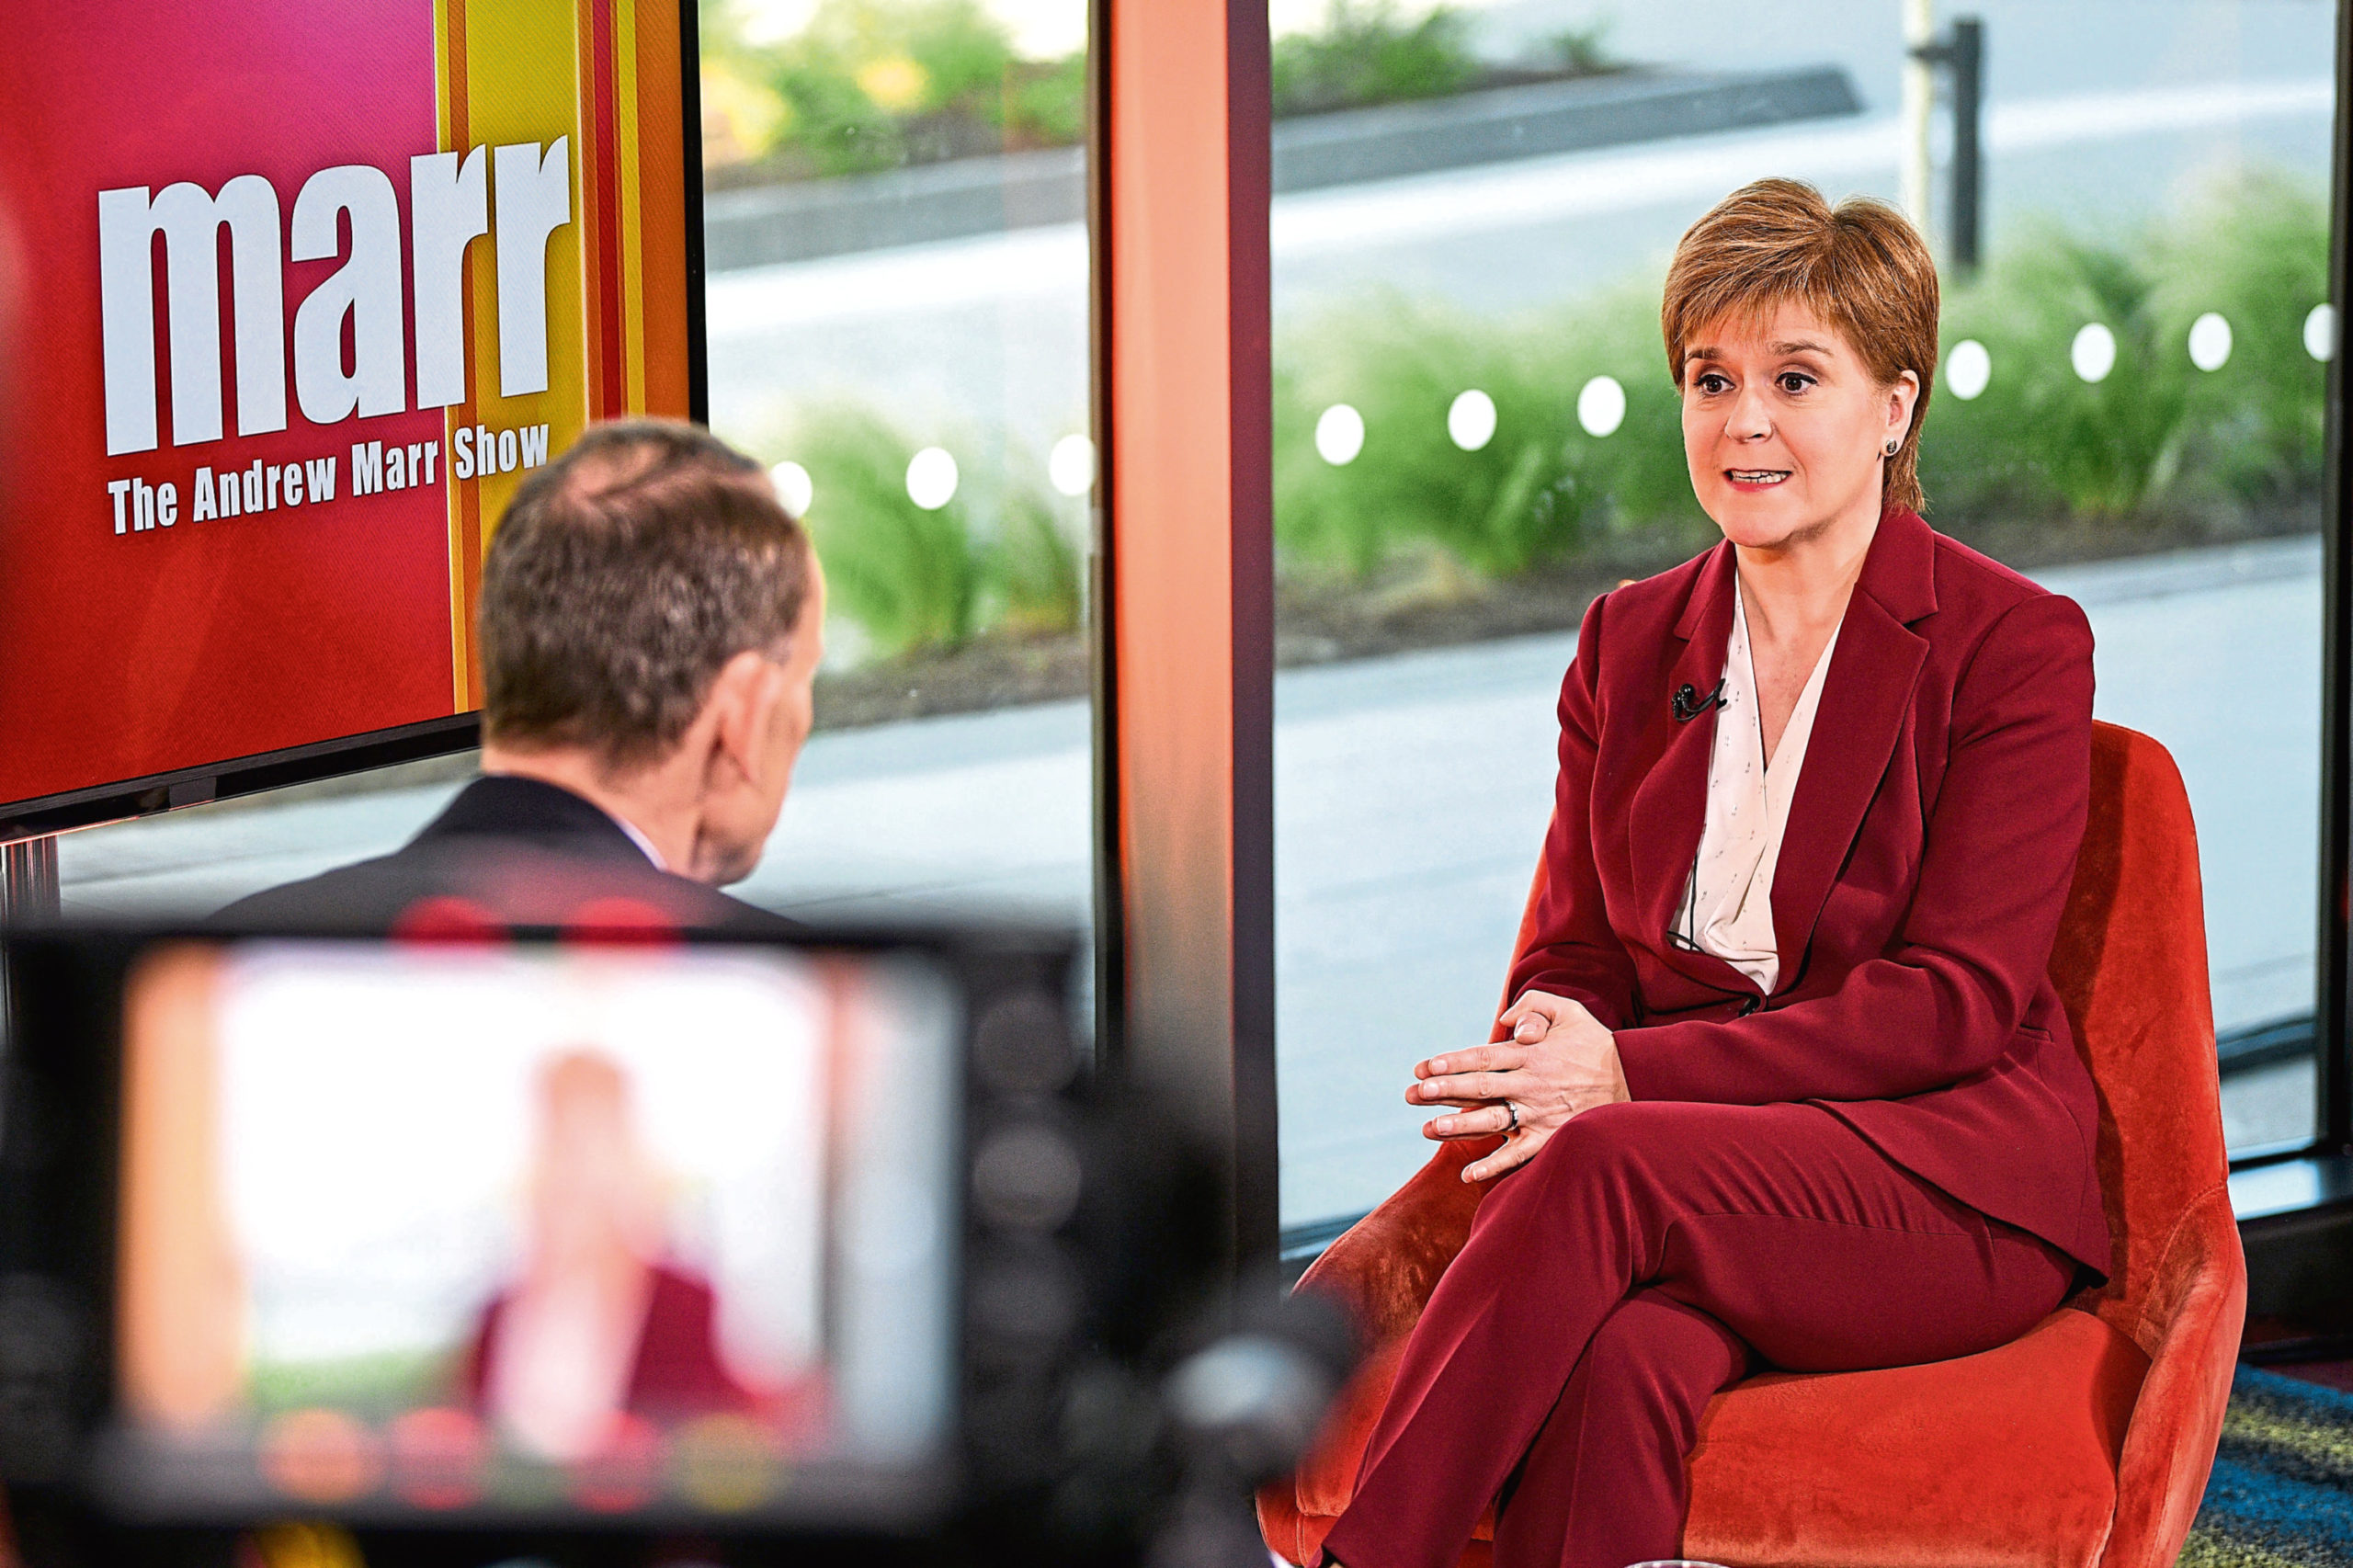 Nicola Sturgeon on The Andrew Marr Show.